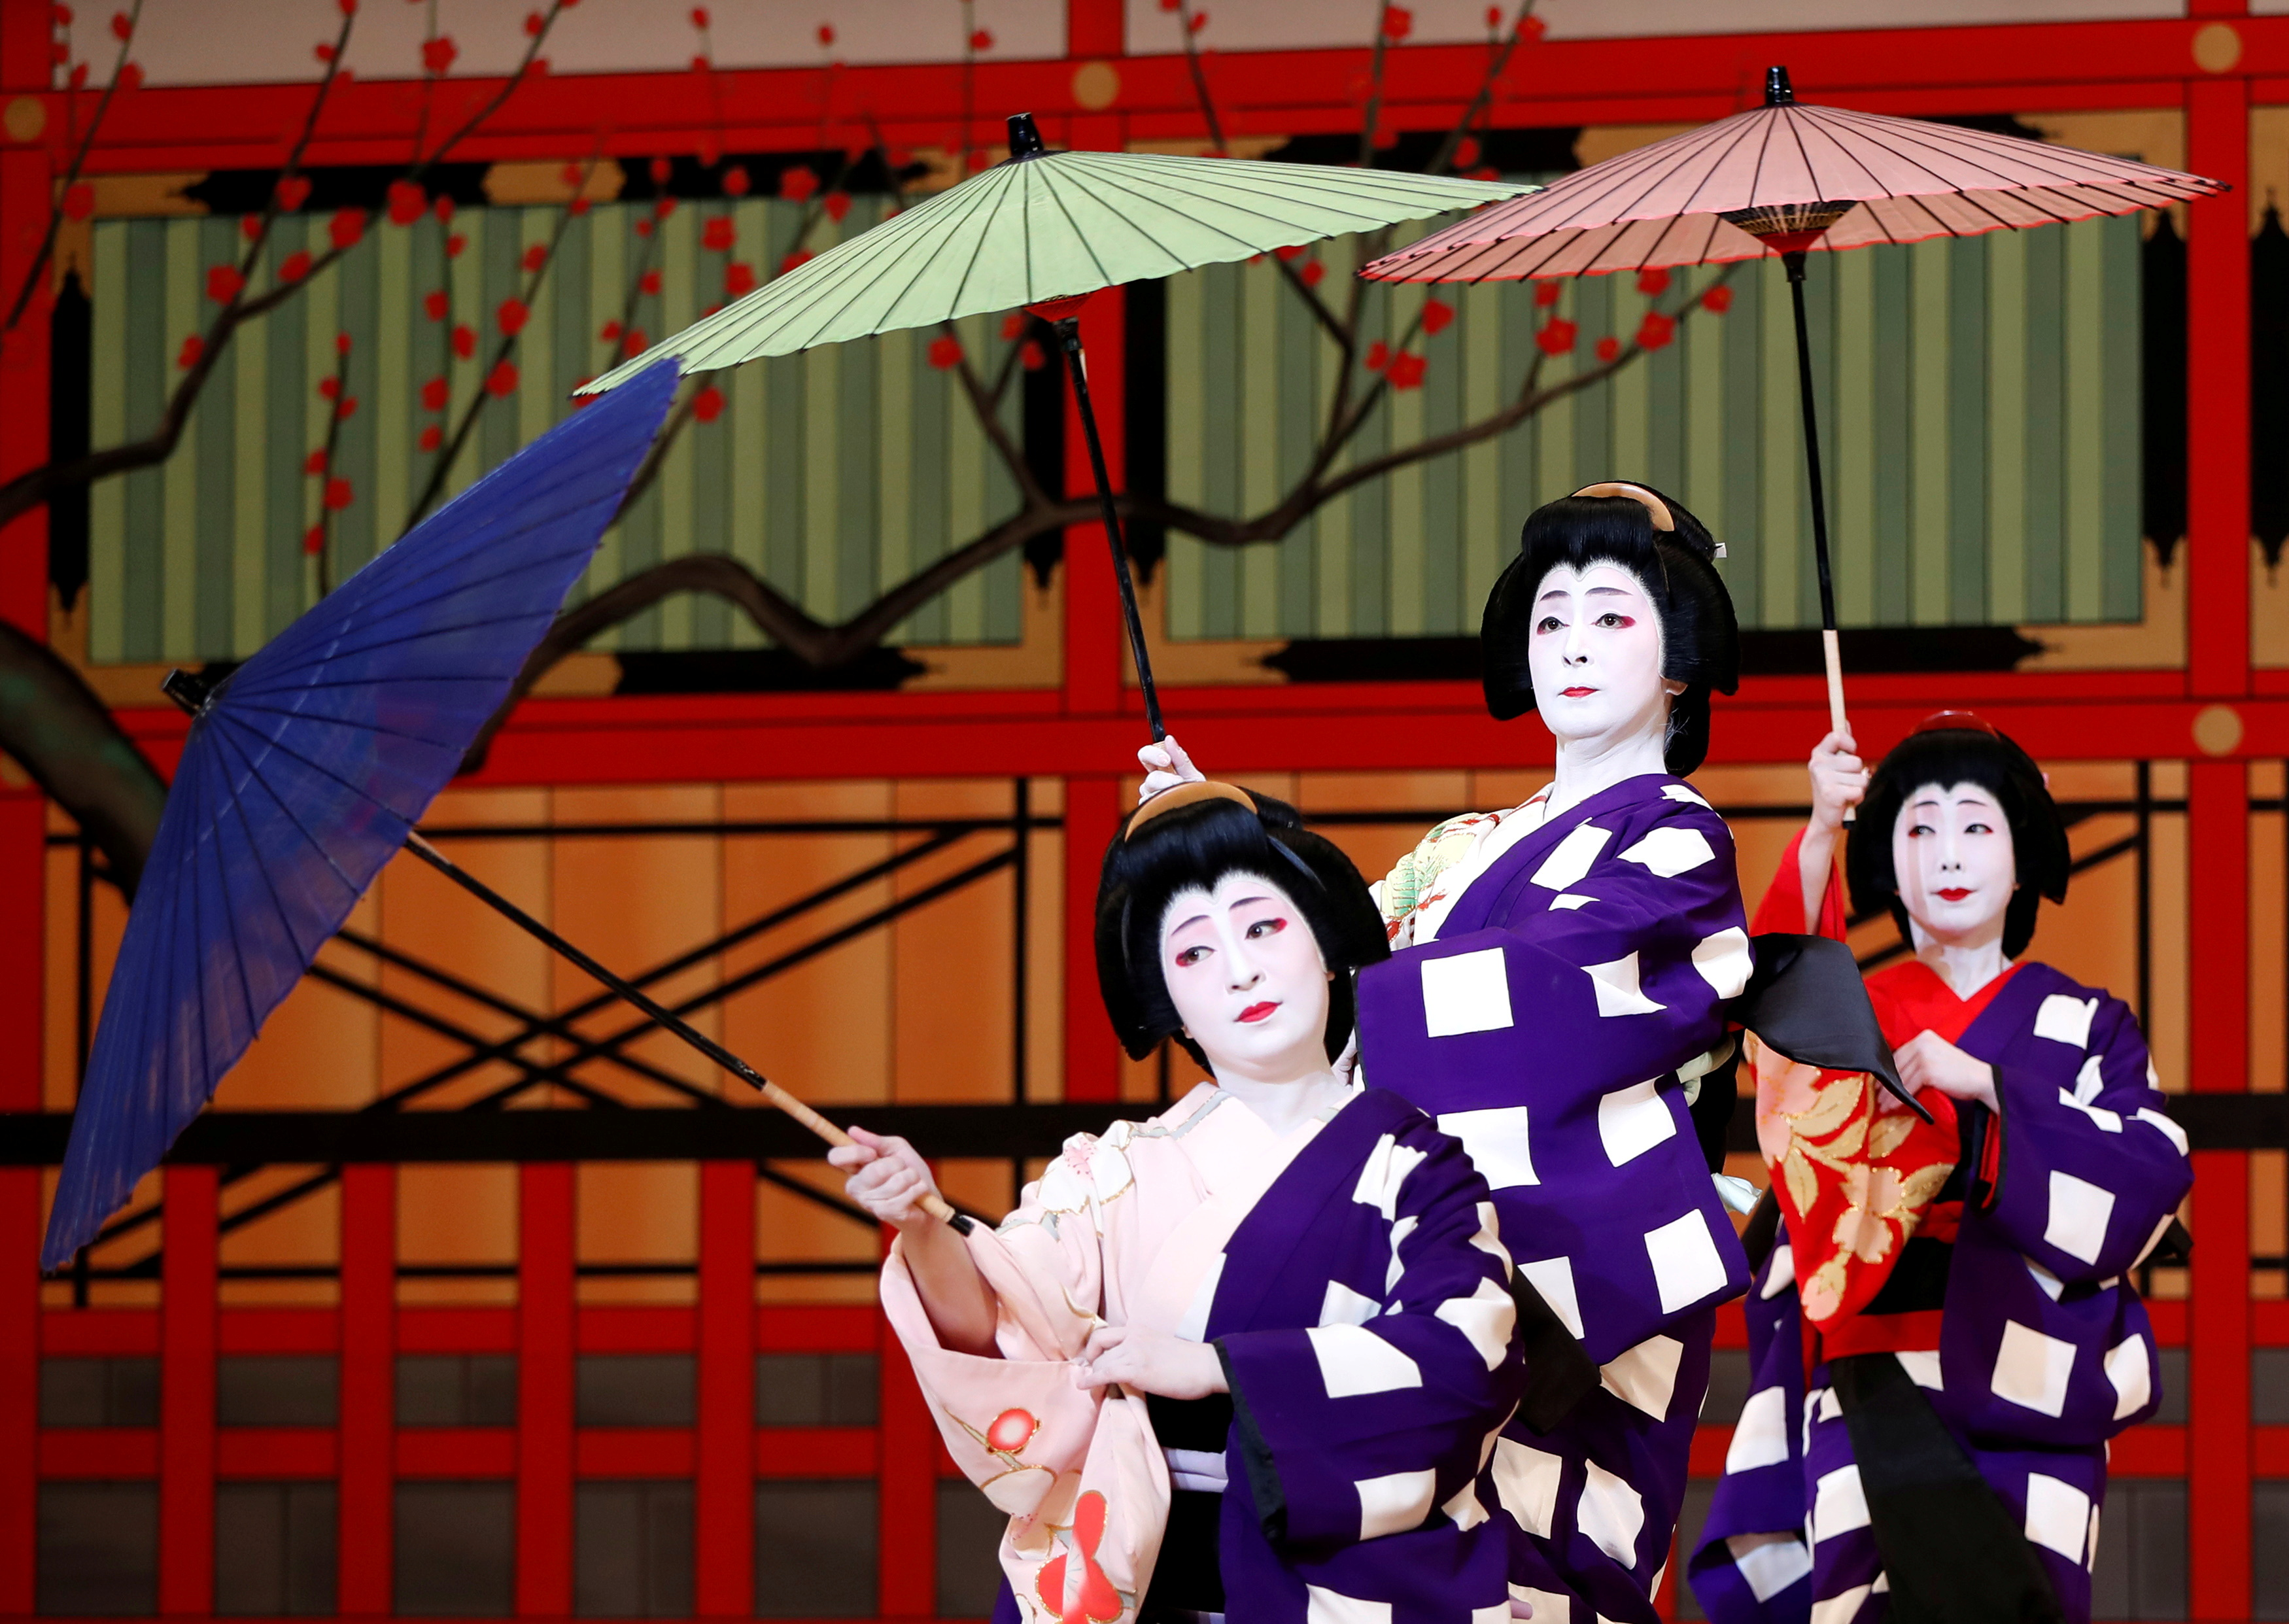 Geishas, traditional Japanese female entertainers, perform their dance during a press preview of the annual Azuma Odori Dance Festival at the Shinbashi Enbujo Theater in Tokyo, Japan May 23, 2018.  REUTERS/Issei Kato/File Photo